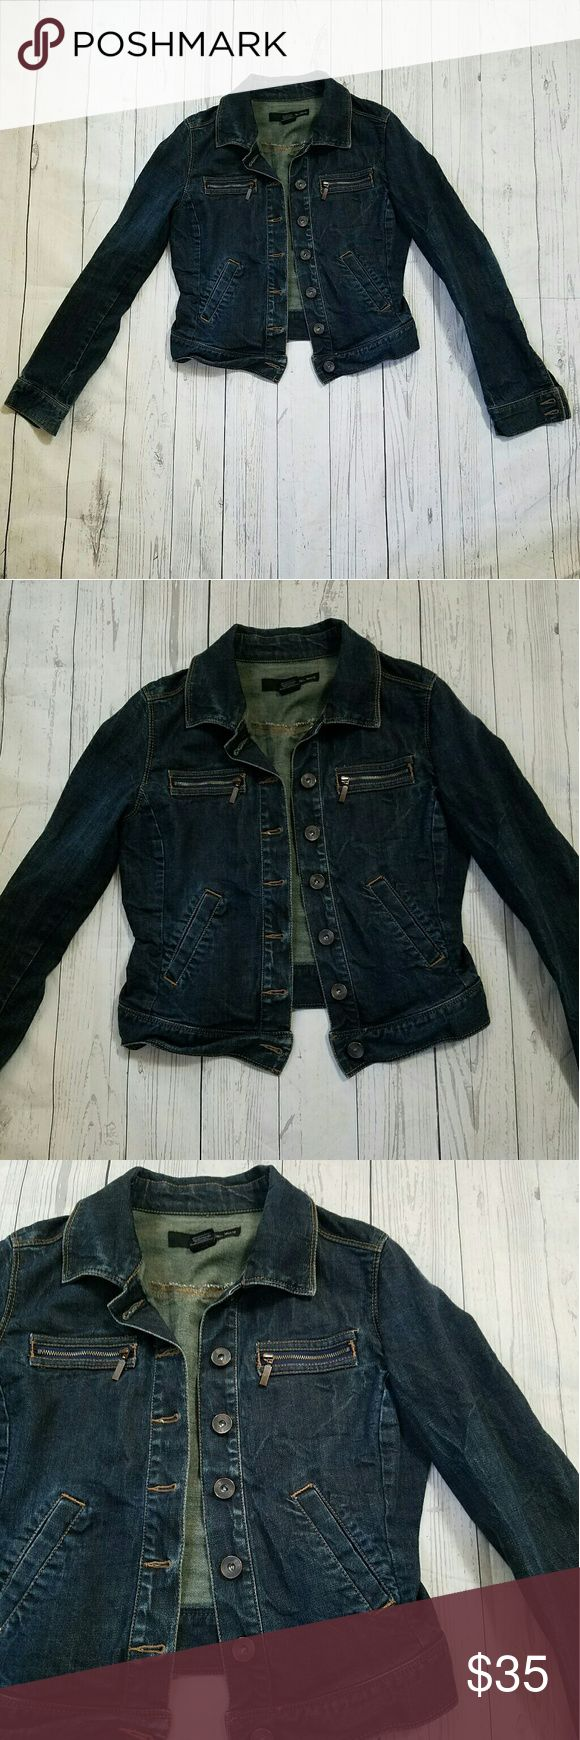 Calvin Klein Trucker Jacket Dark wash, button down. 2 slit pockets at was it, 2 zipper pockets on chest. Tight fit. 19 inches armpit to armpit. 16 inches across the waist. 19.5 inches long. 98% cotton, 2% elastane. Factory whiskering, faded elbows. Calvin Klein Jackets & Coats Jean Jackets